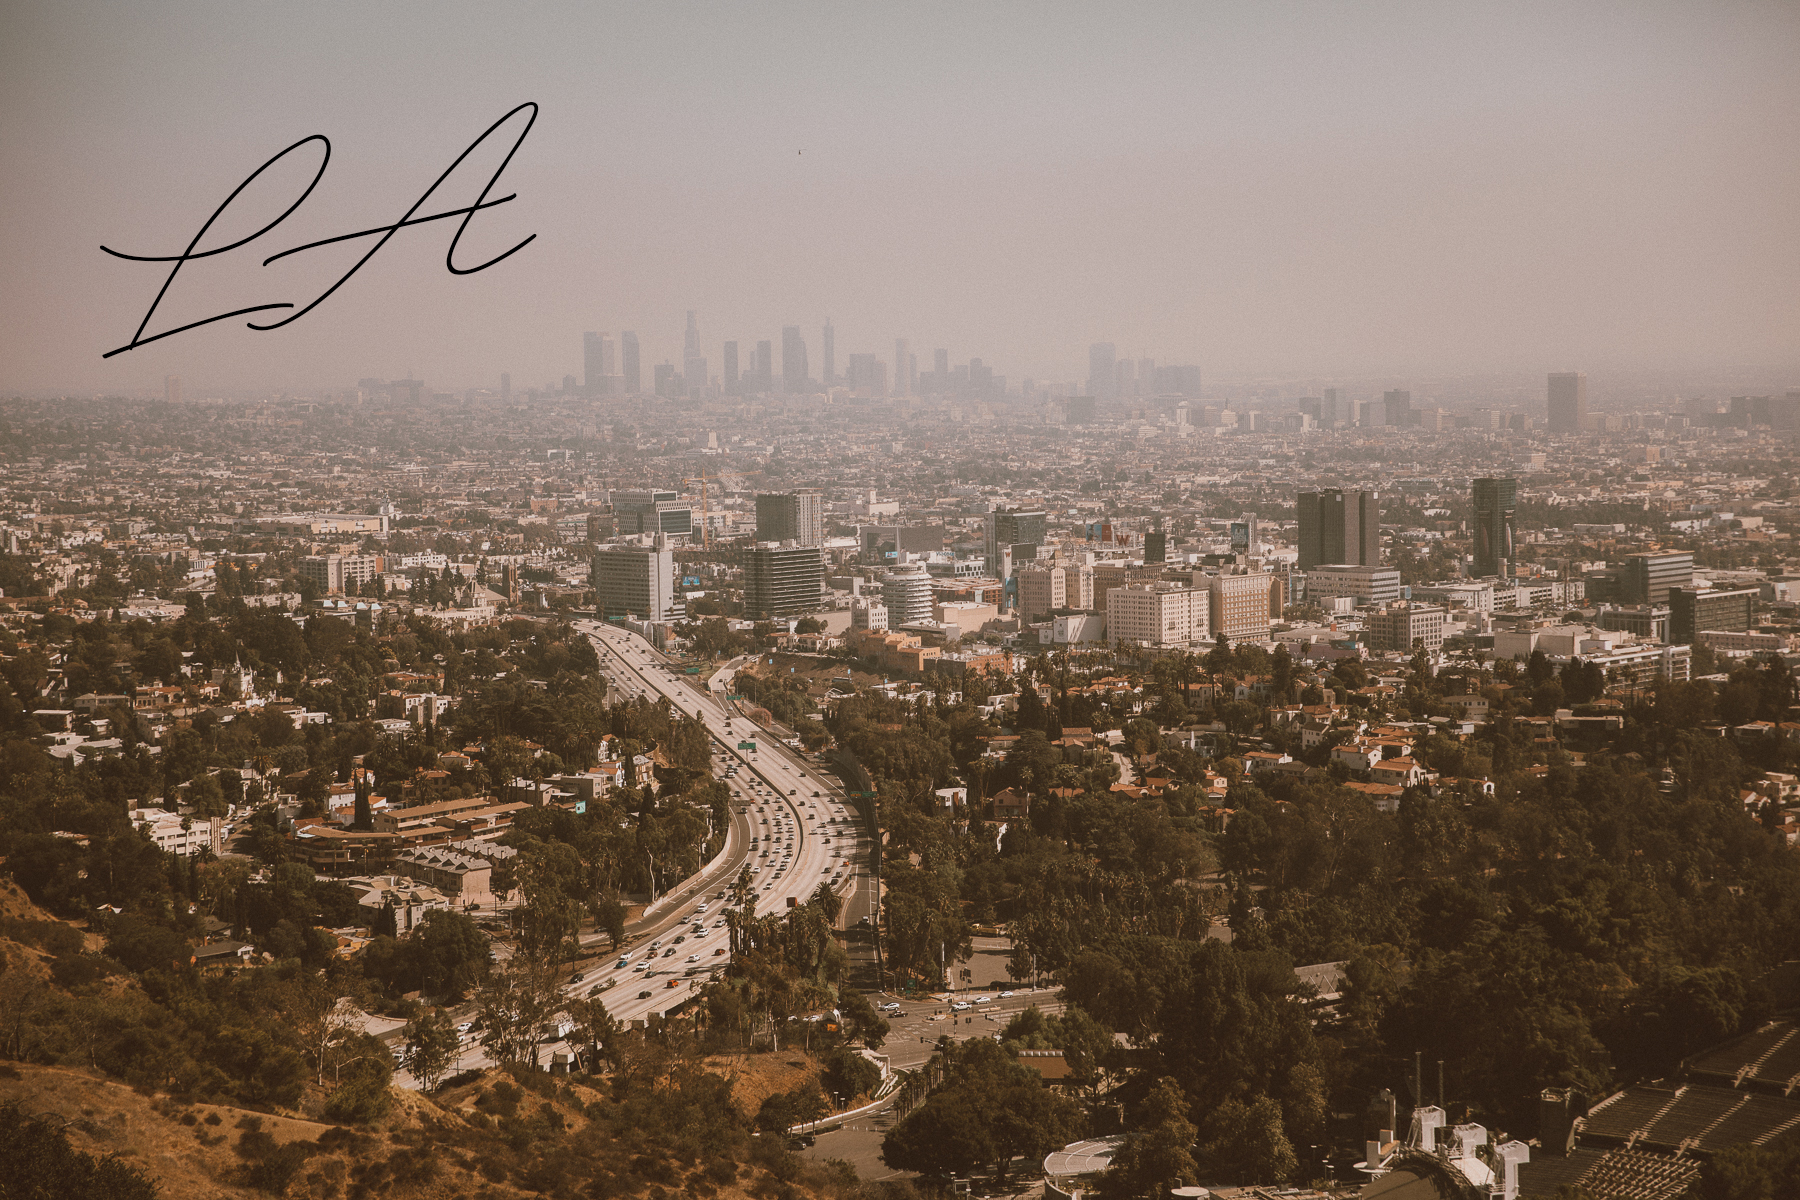 California LA Road trip by photographer Ailera Stone